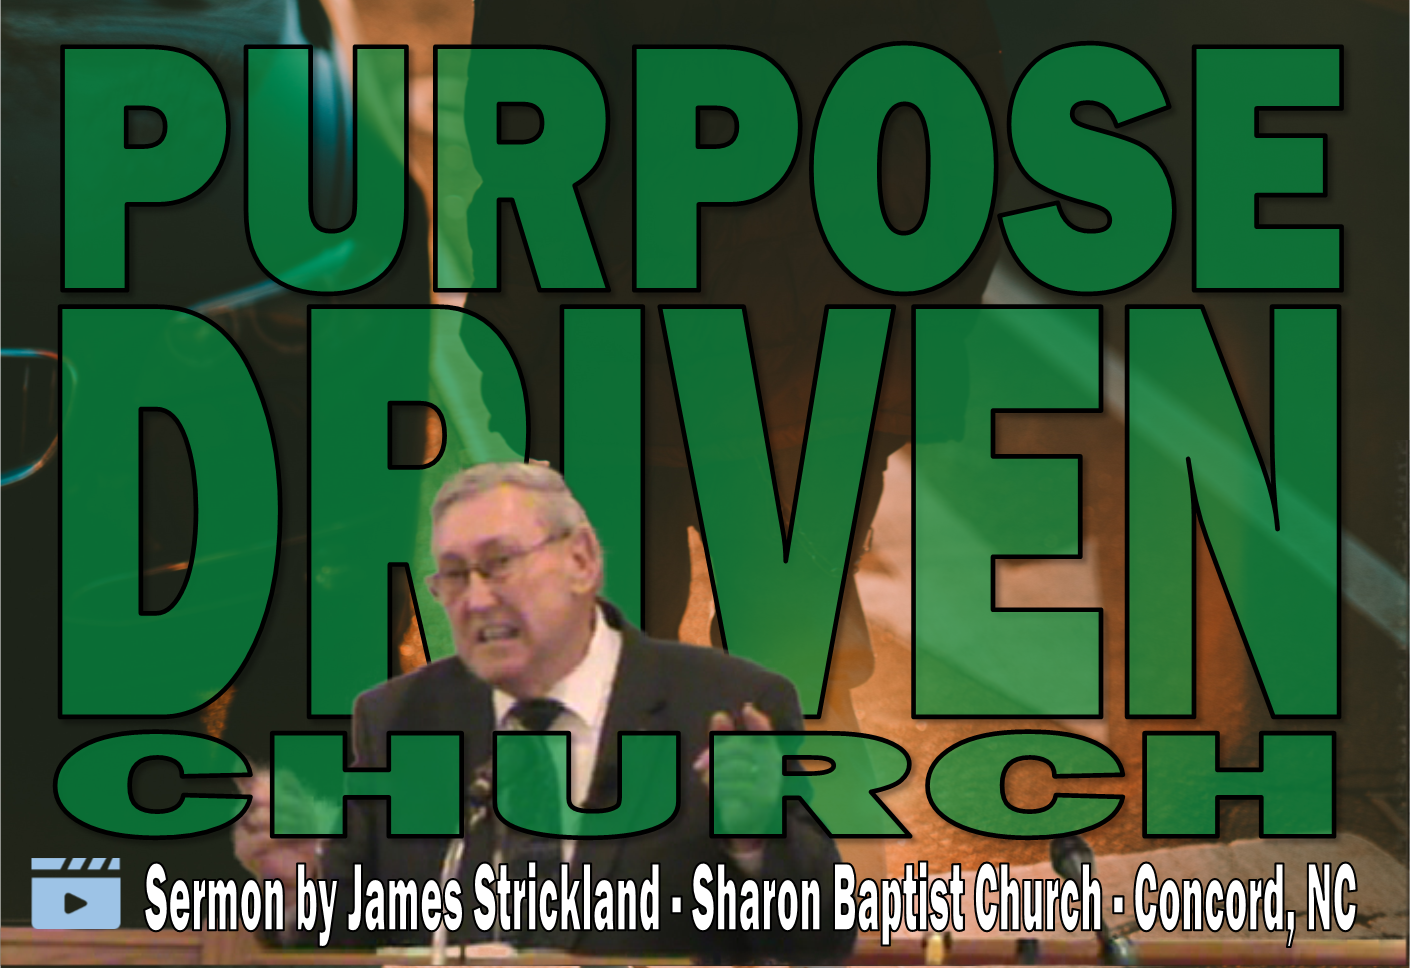 Purpose Driven Chruch - Sermon by James Strickland at Sharon Baptist Church